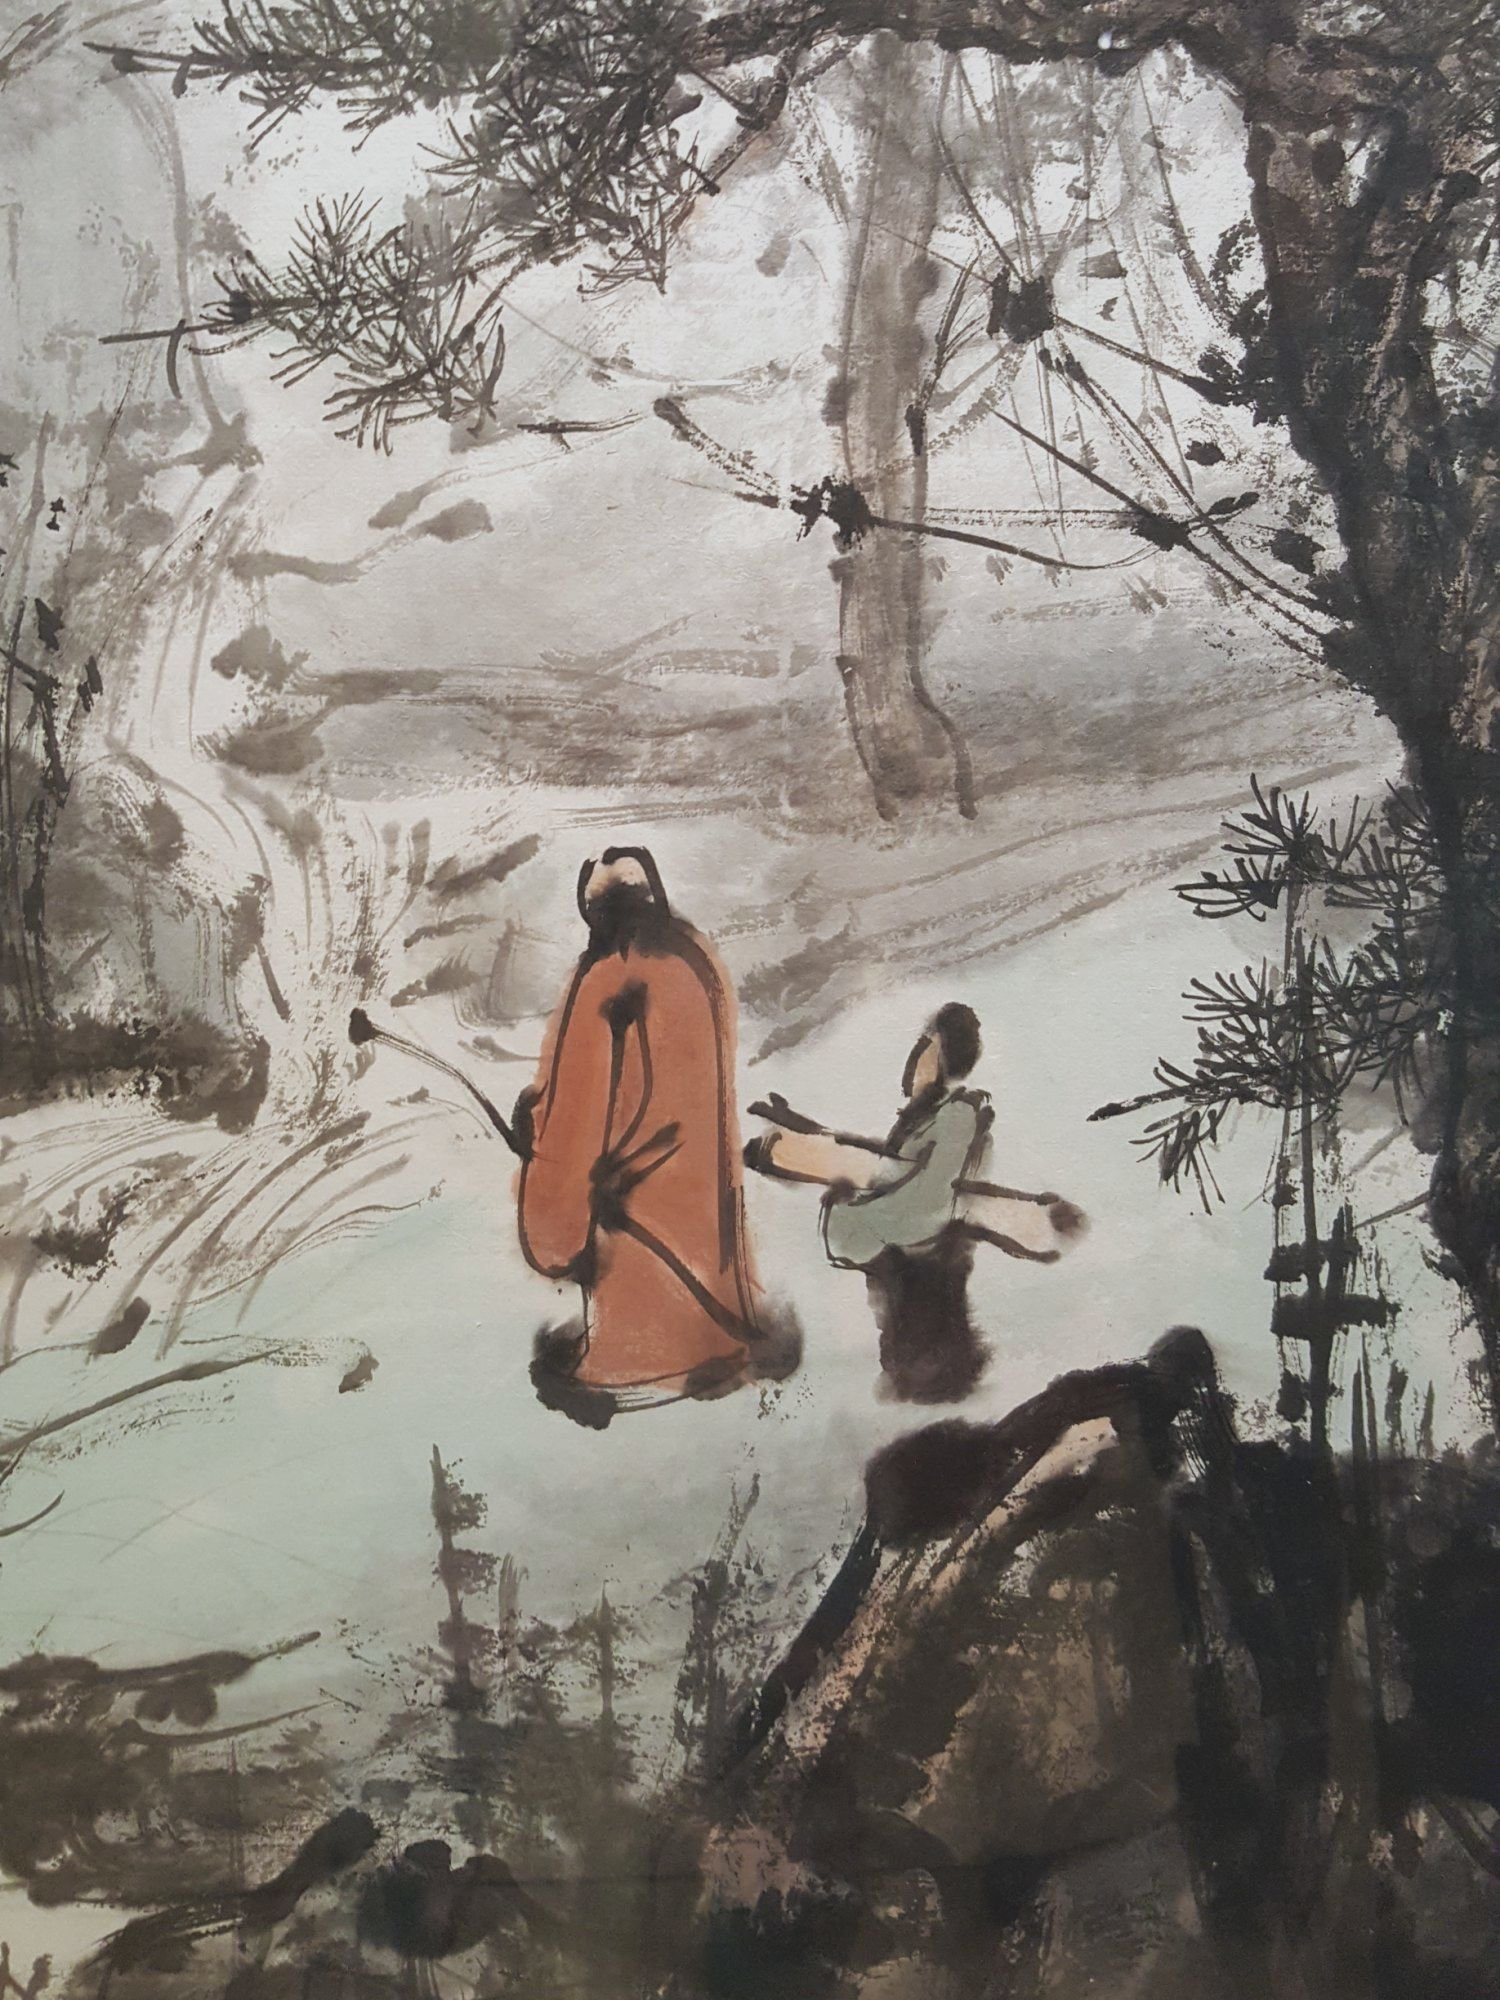 Chinese Ink Figures by Wang Zheng Ping      'Landscape with Unvoiced Sounds', National Art Museum, Beijing